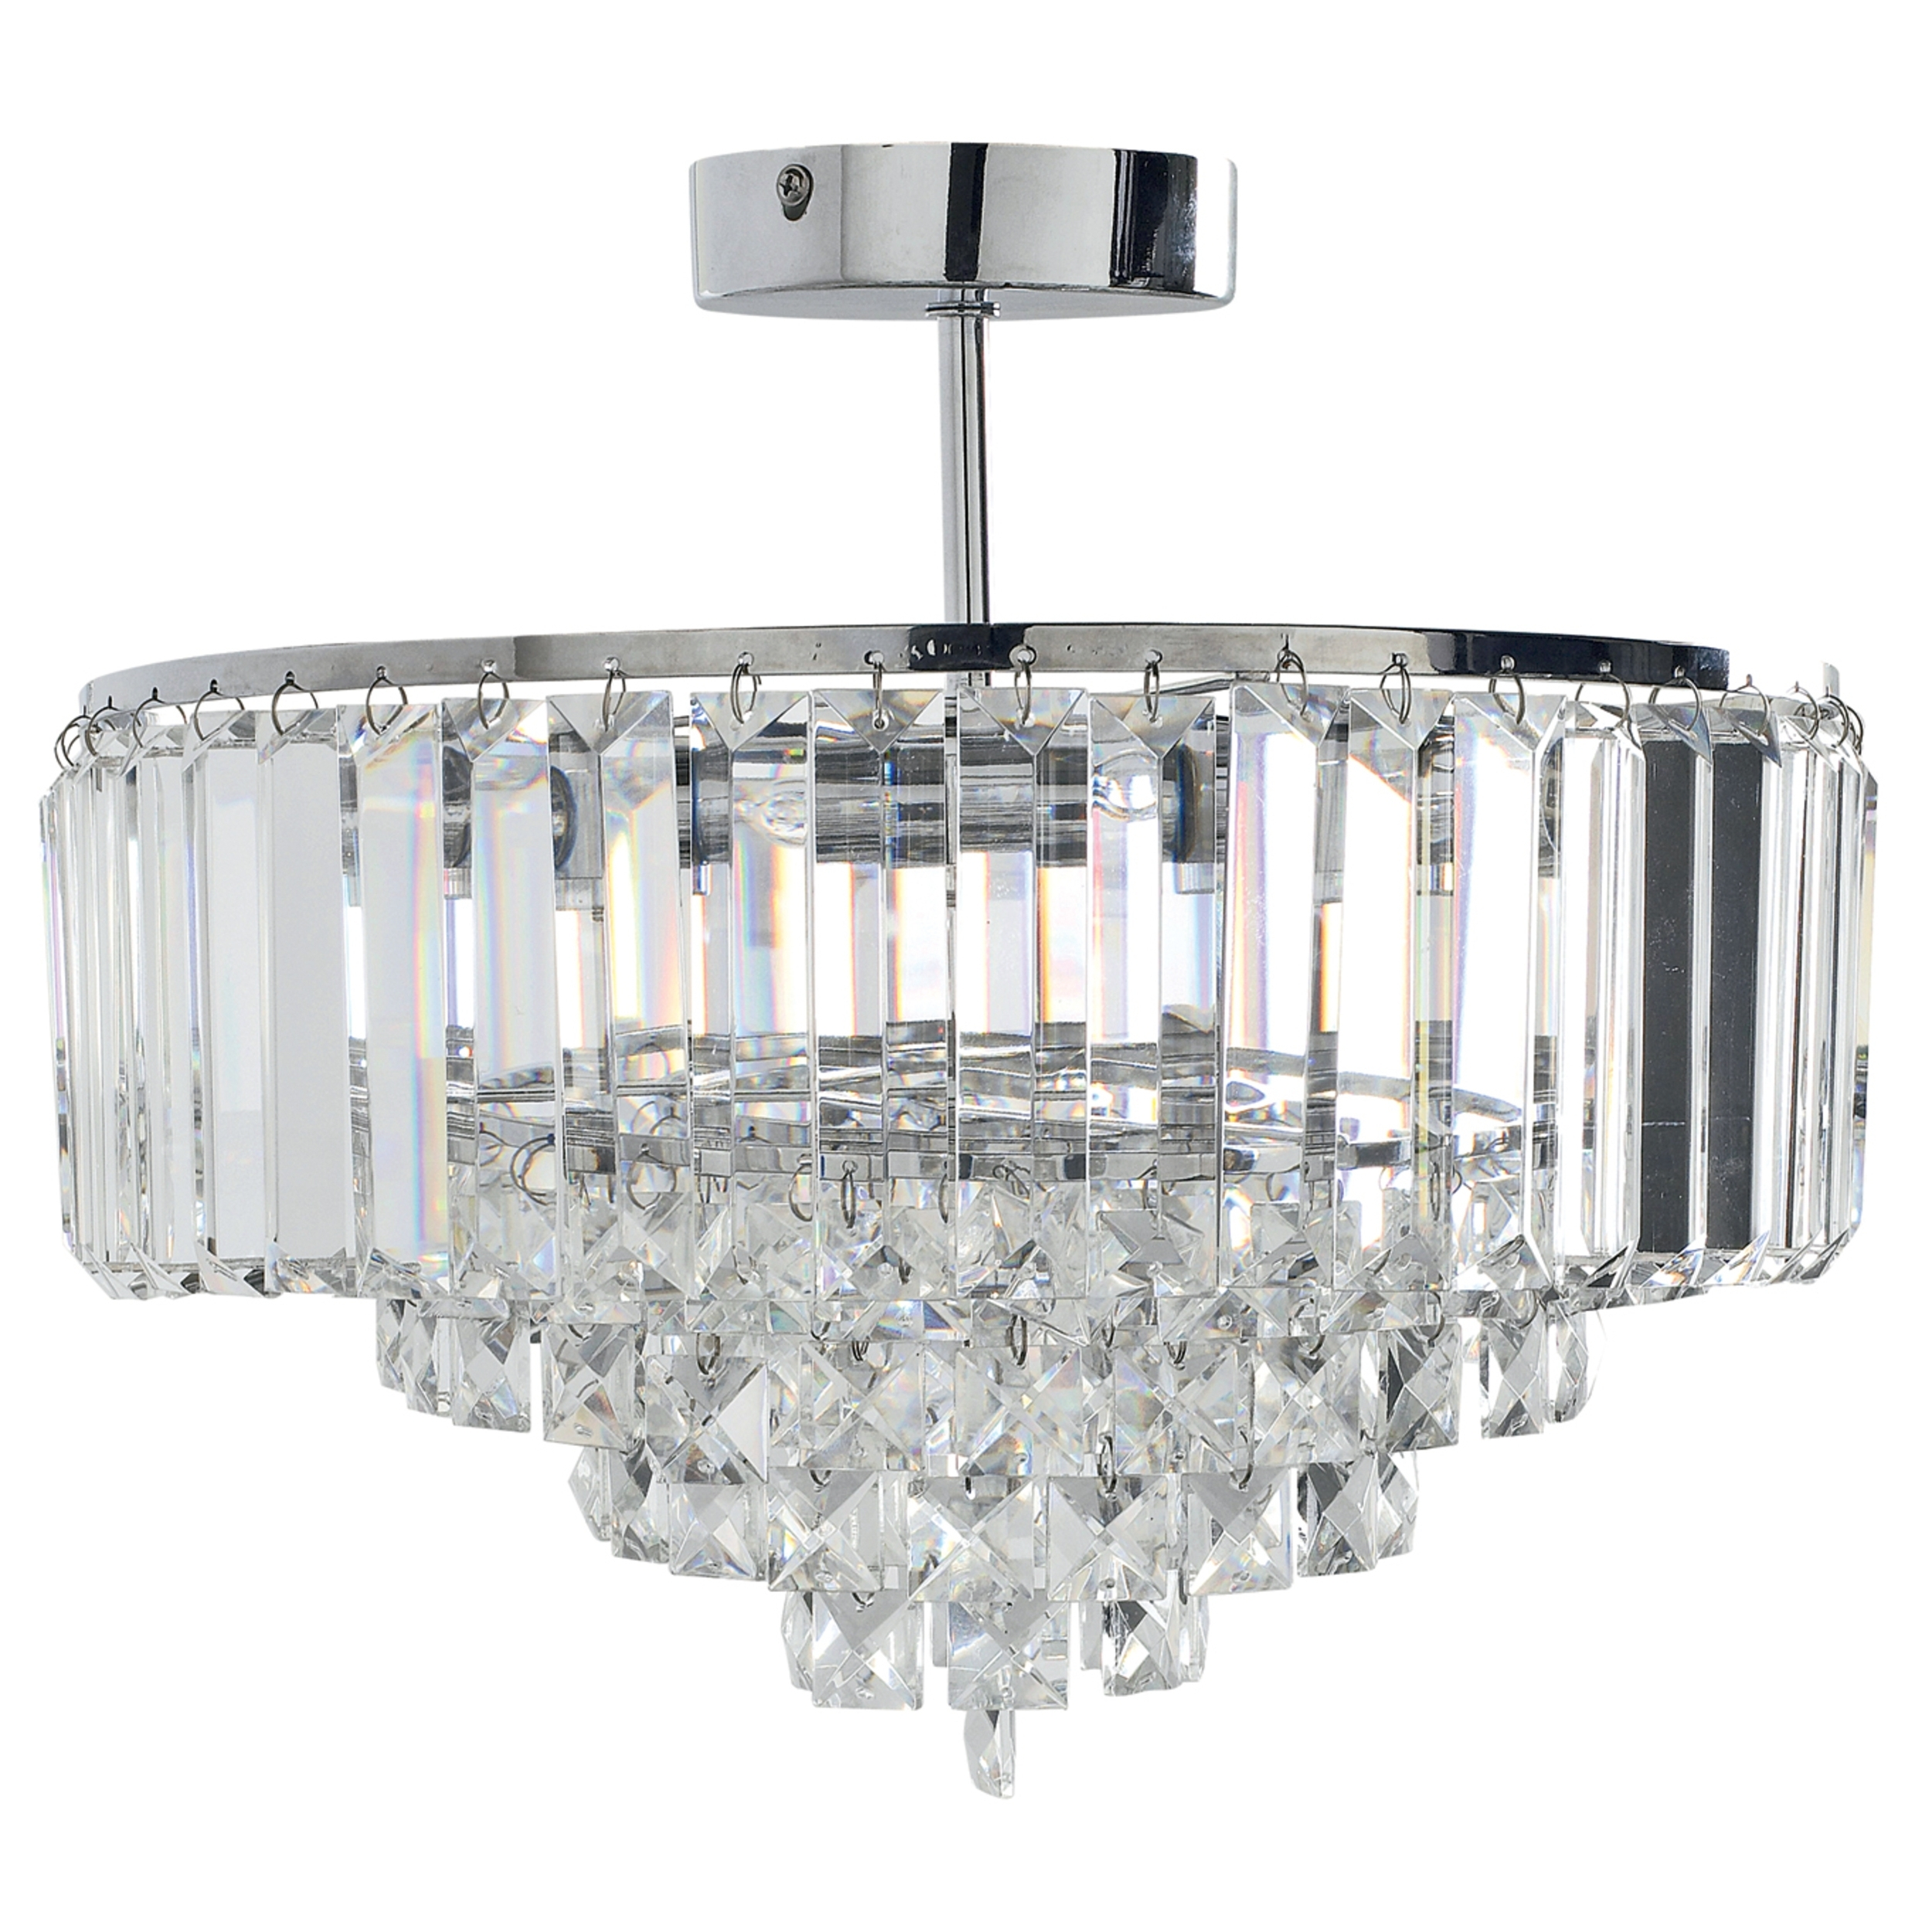 Vienna Crystal Chandeliers Intended For Latest Vienna Crystal And Chrome Pendant Light (Gallery 4 of 20)